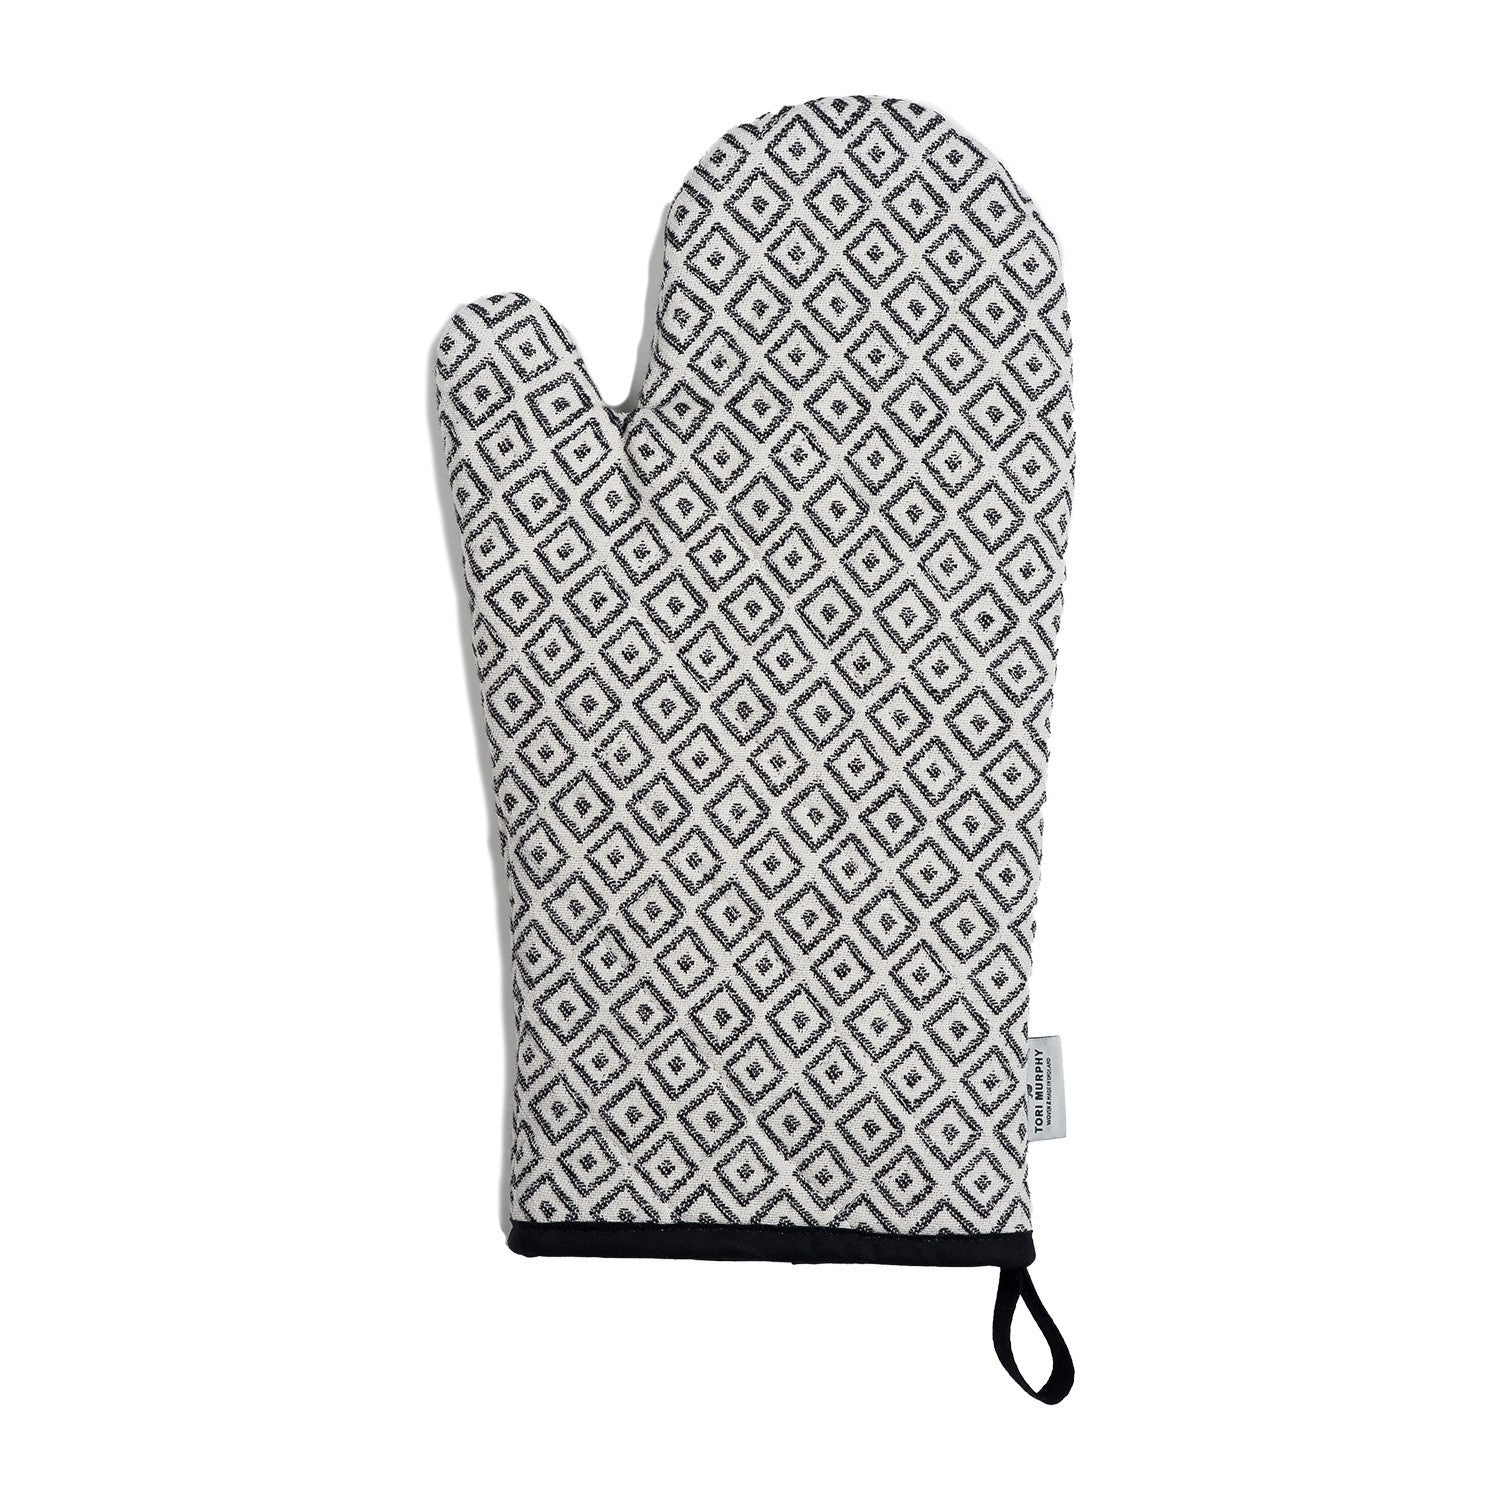 Broadway Oven Glove Black on Linen